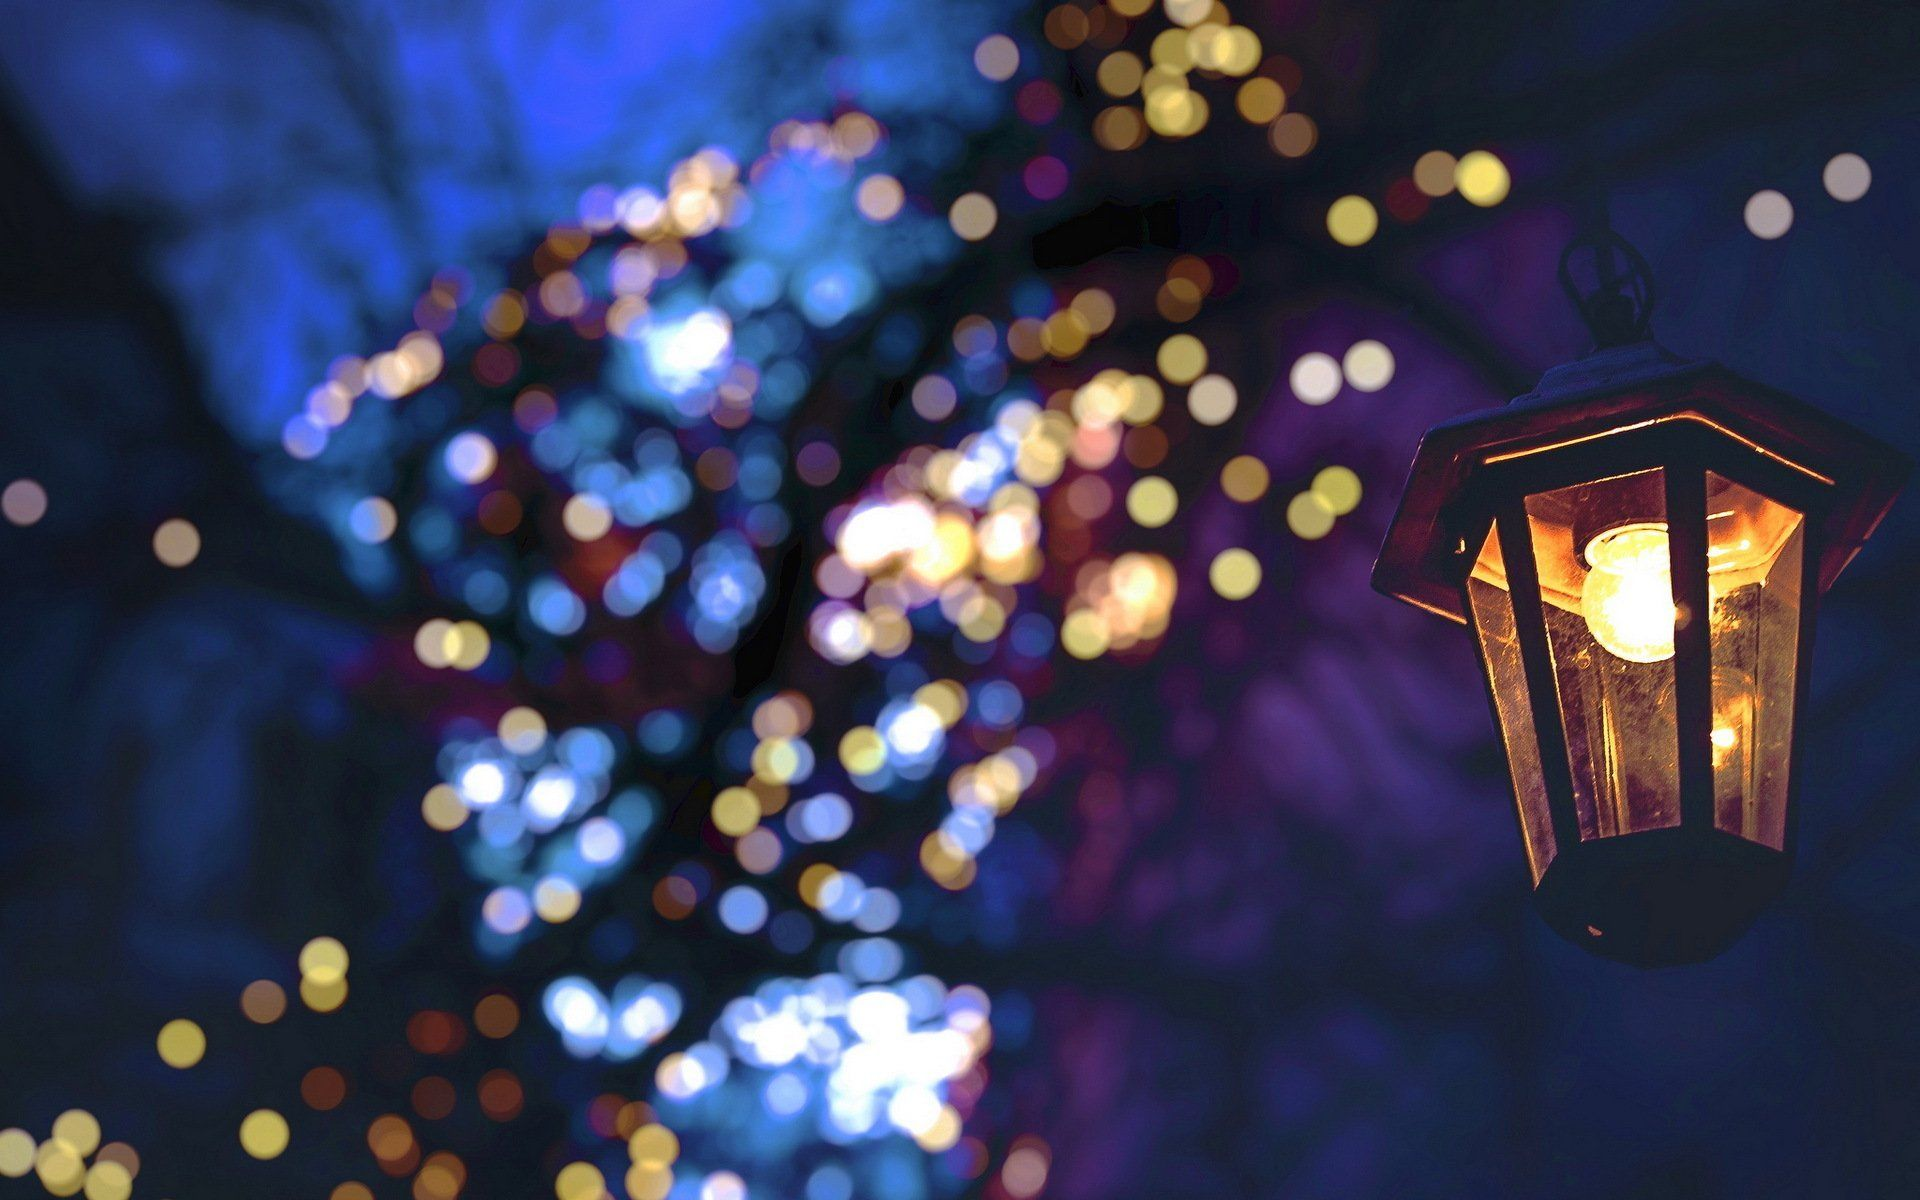 Fairy Lights Wallpapers - Top Free Fairy Lights Backgrounds